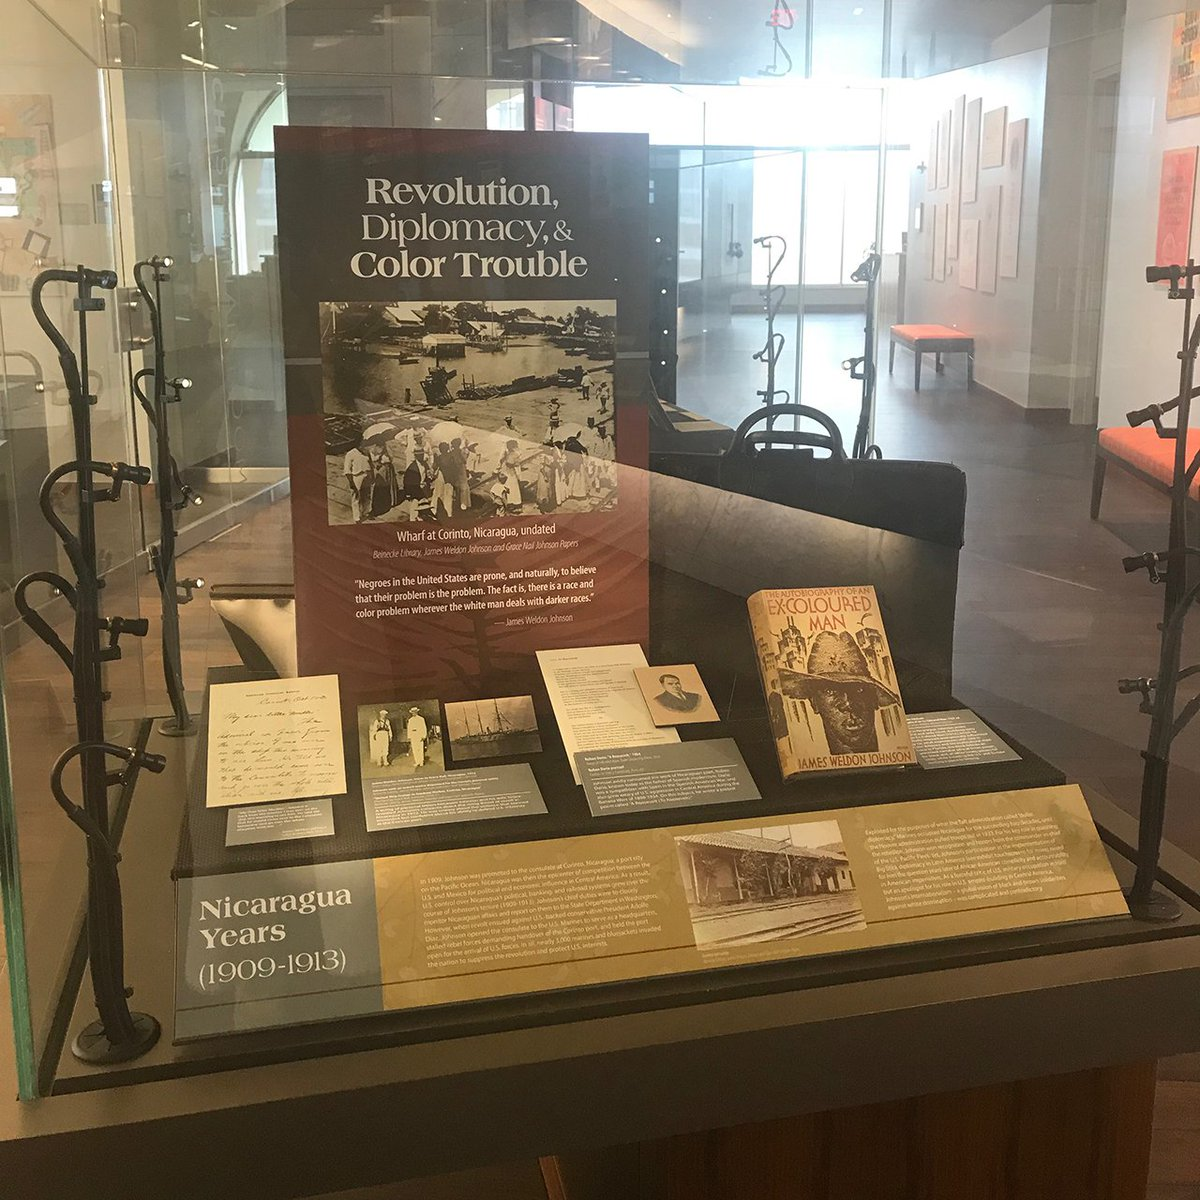 """Rose Library's new exhibit """"Black Cosmopolitan"""" shows us how #JamesWeldonJohnson's little known career as a diplomat to Venezuela and Nicaragua influenced his life as a writer and activist. http://bit.ly/JWJBlackCosmopolitan… #Emory @EmoryRoseMARBL"""